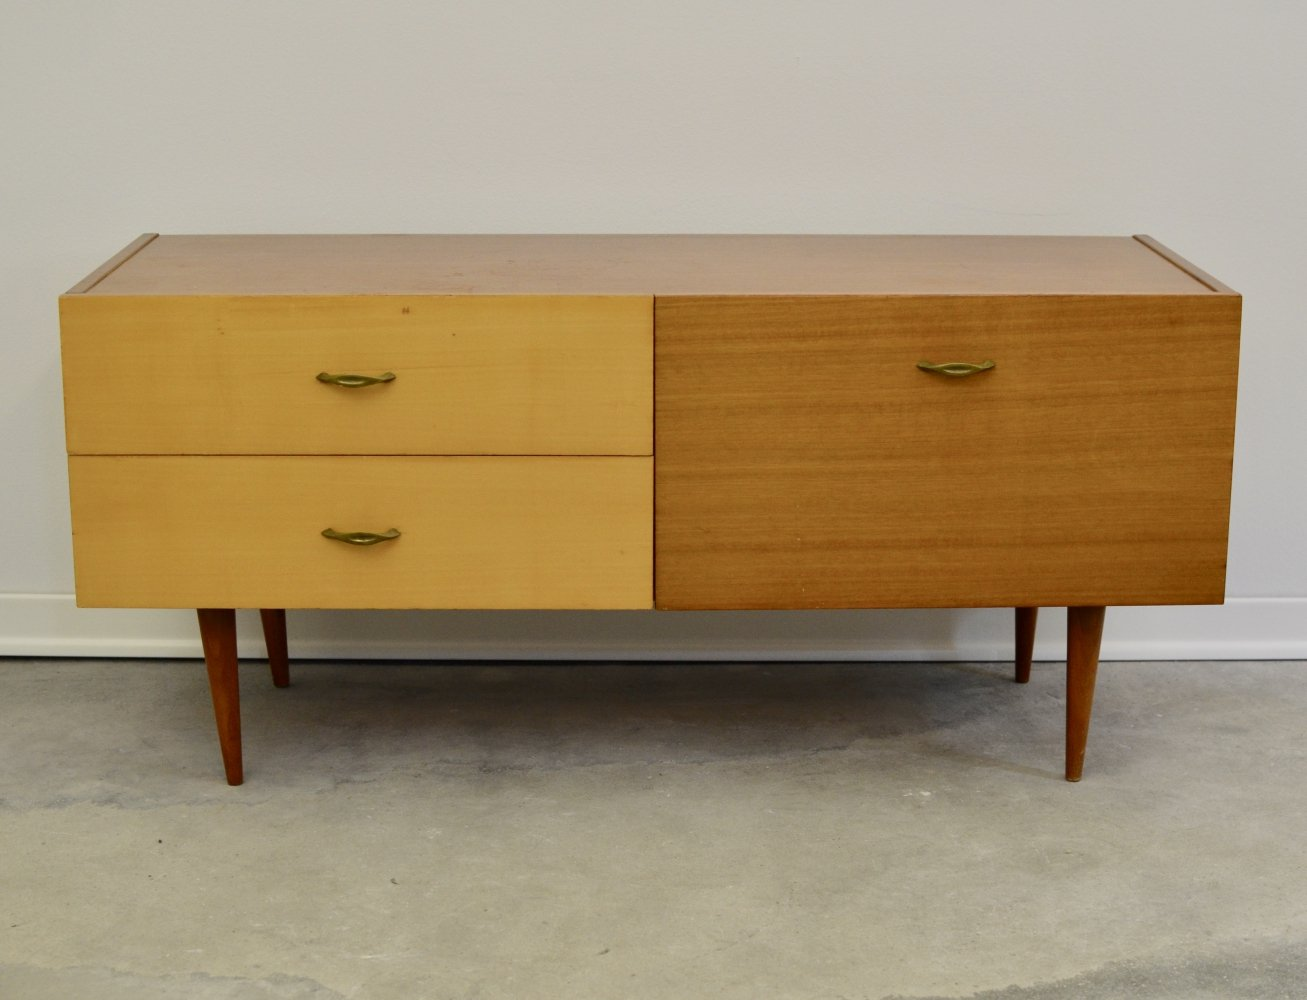 Sideboard with drawers, 1960s